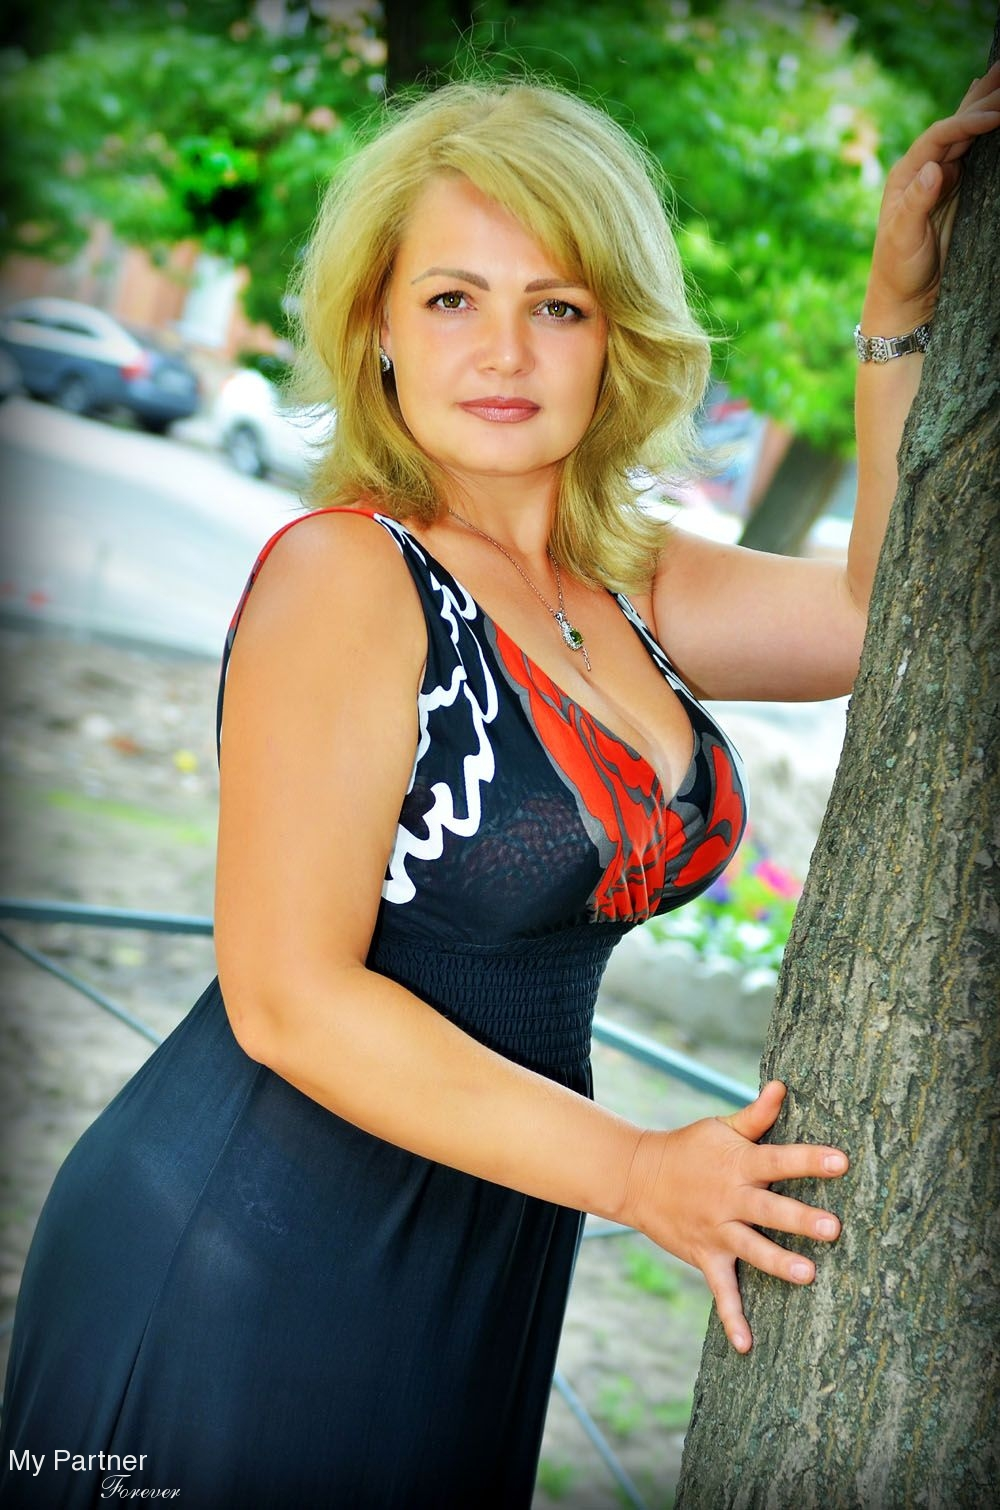 bergheim divorced singles personals Just divorced singles is the place for divorced singles looking for divorced dating the divorced dating site for people who want dating for divorced singles.